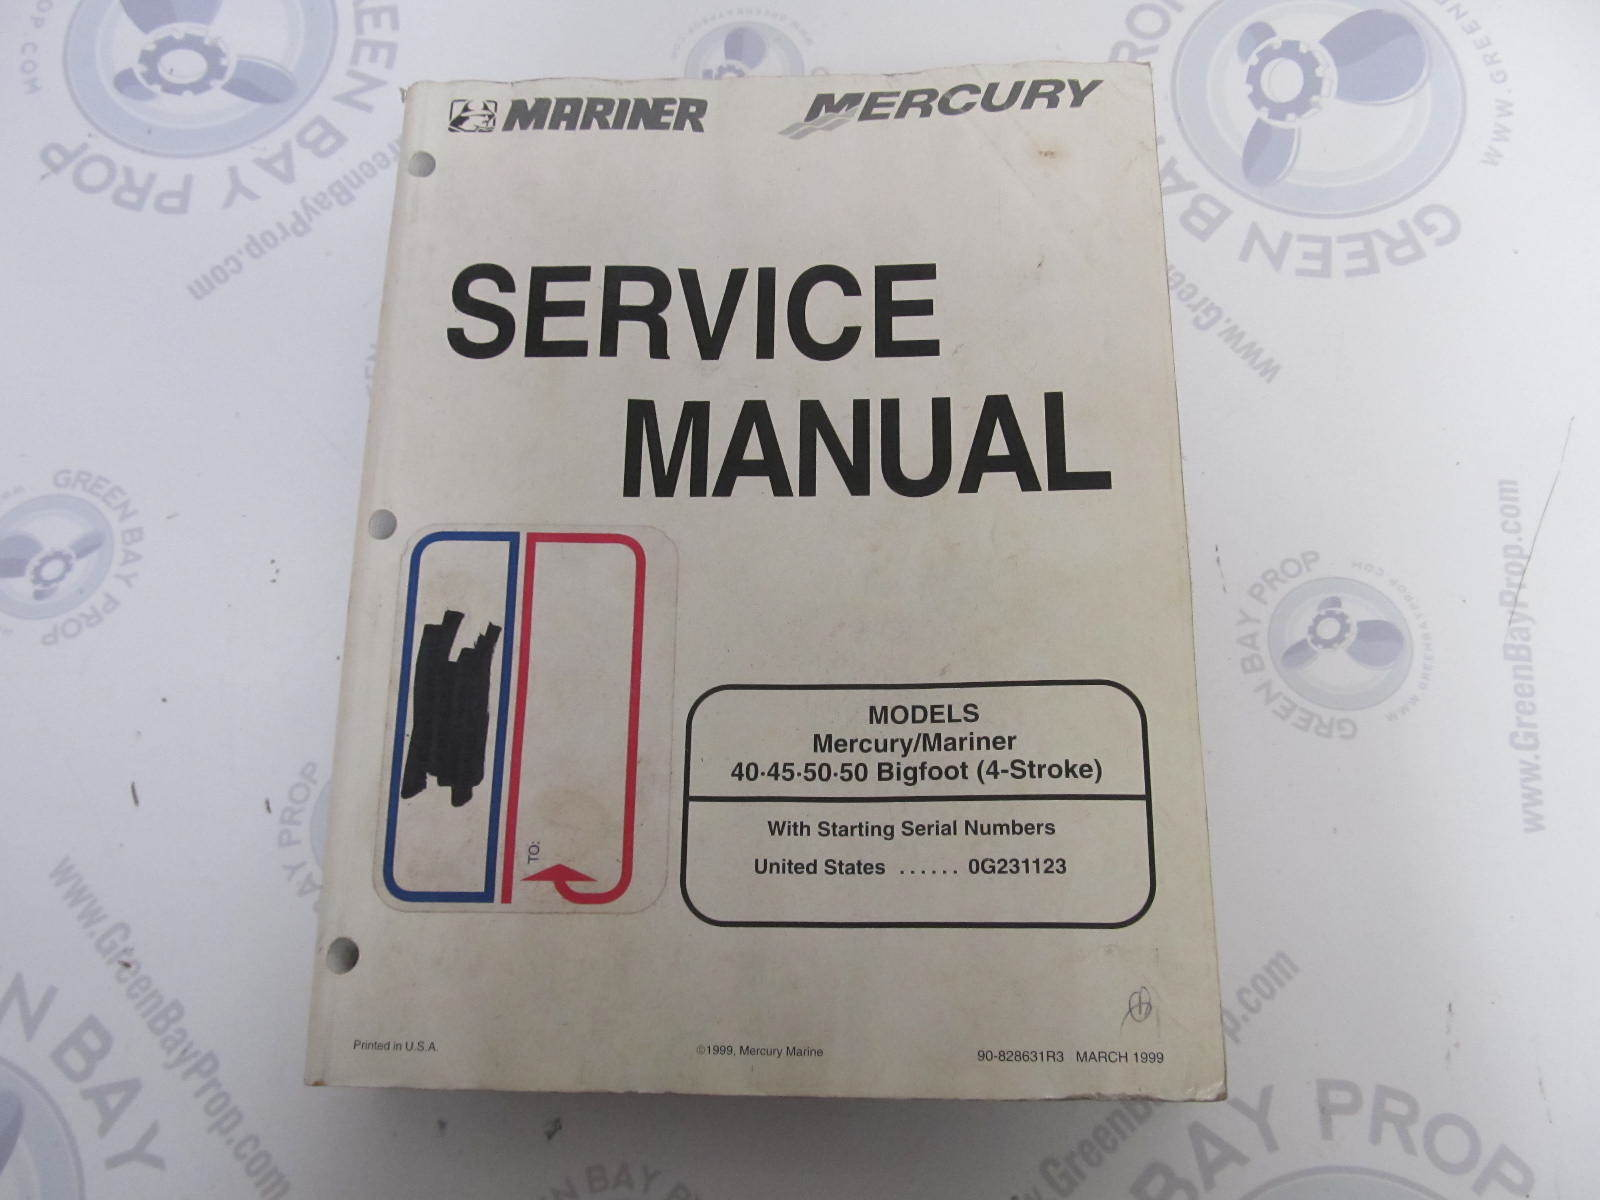 90-828631R3 Mercury Mariner Outboard Service Manual 40-50 4-Stroke Bigfoot  | Green Bay Propeller & Marine LLC